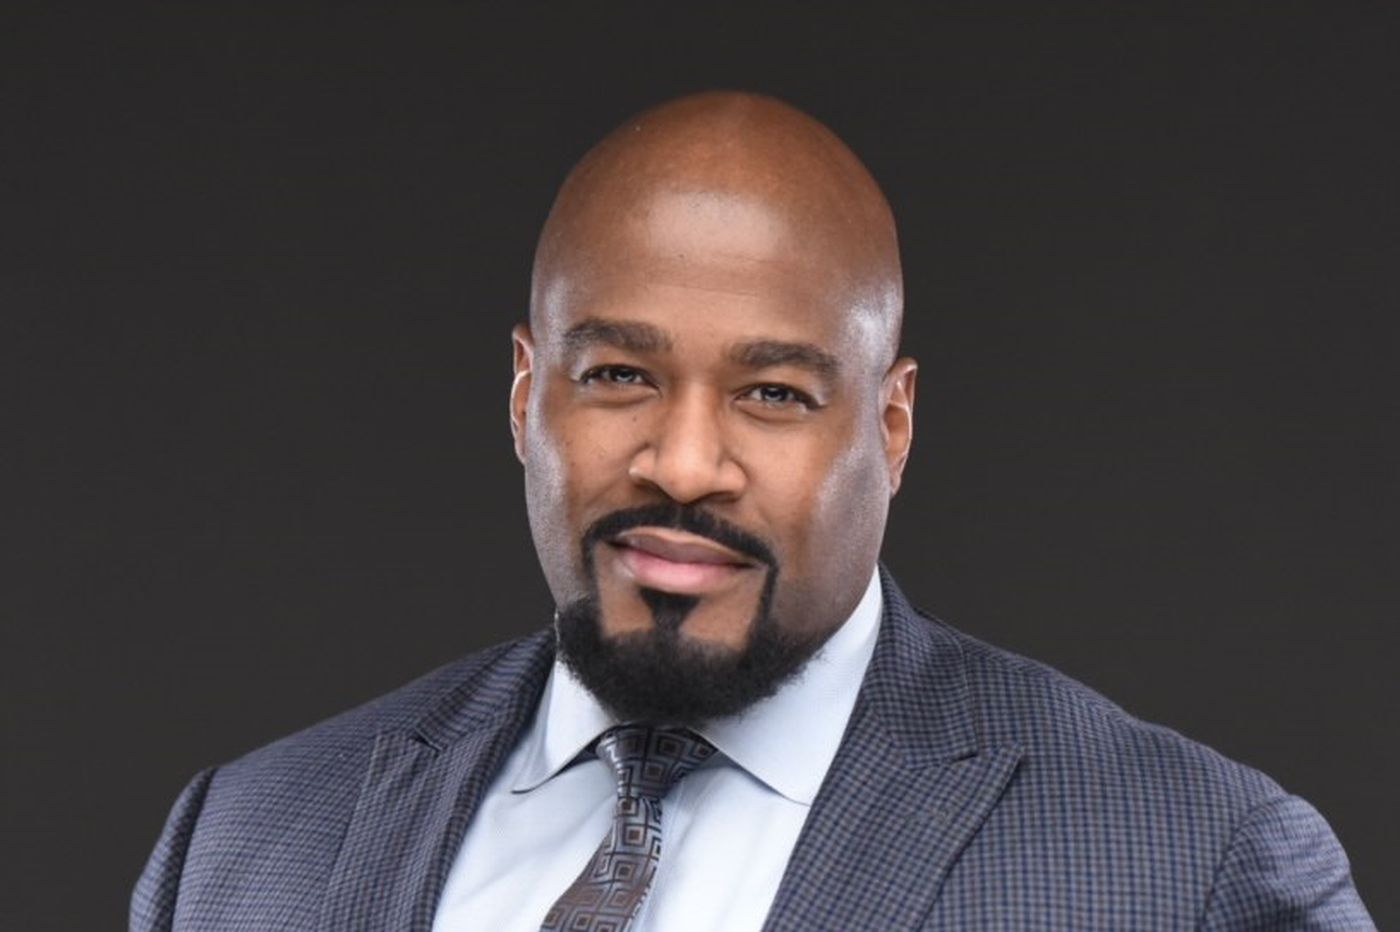 African American Chamber of Commerce's Donavan West on his members' suffering amid Floyd protests